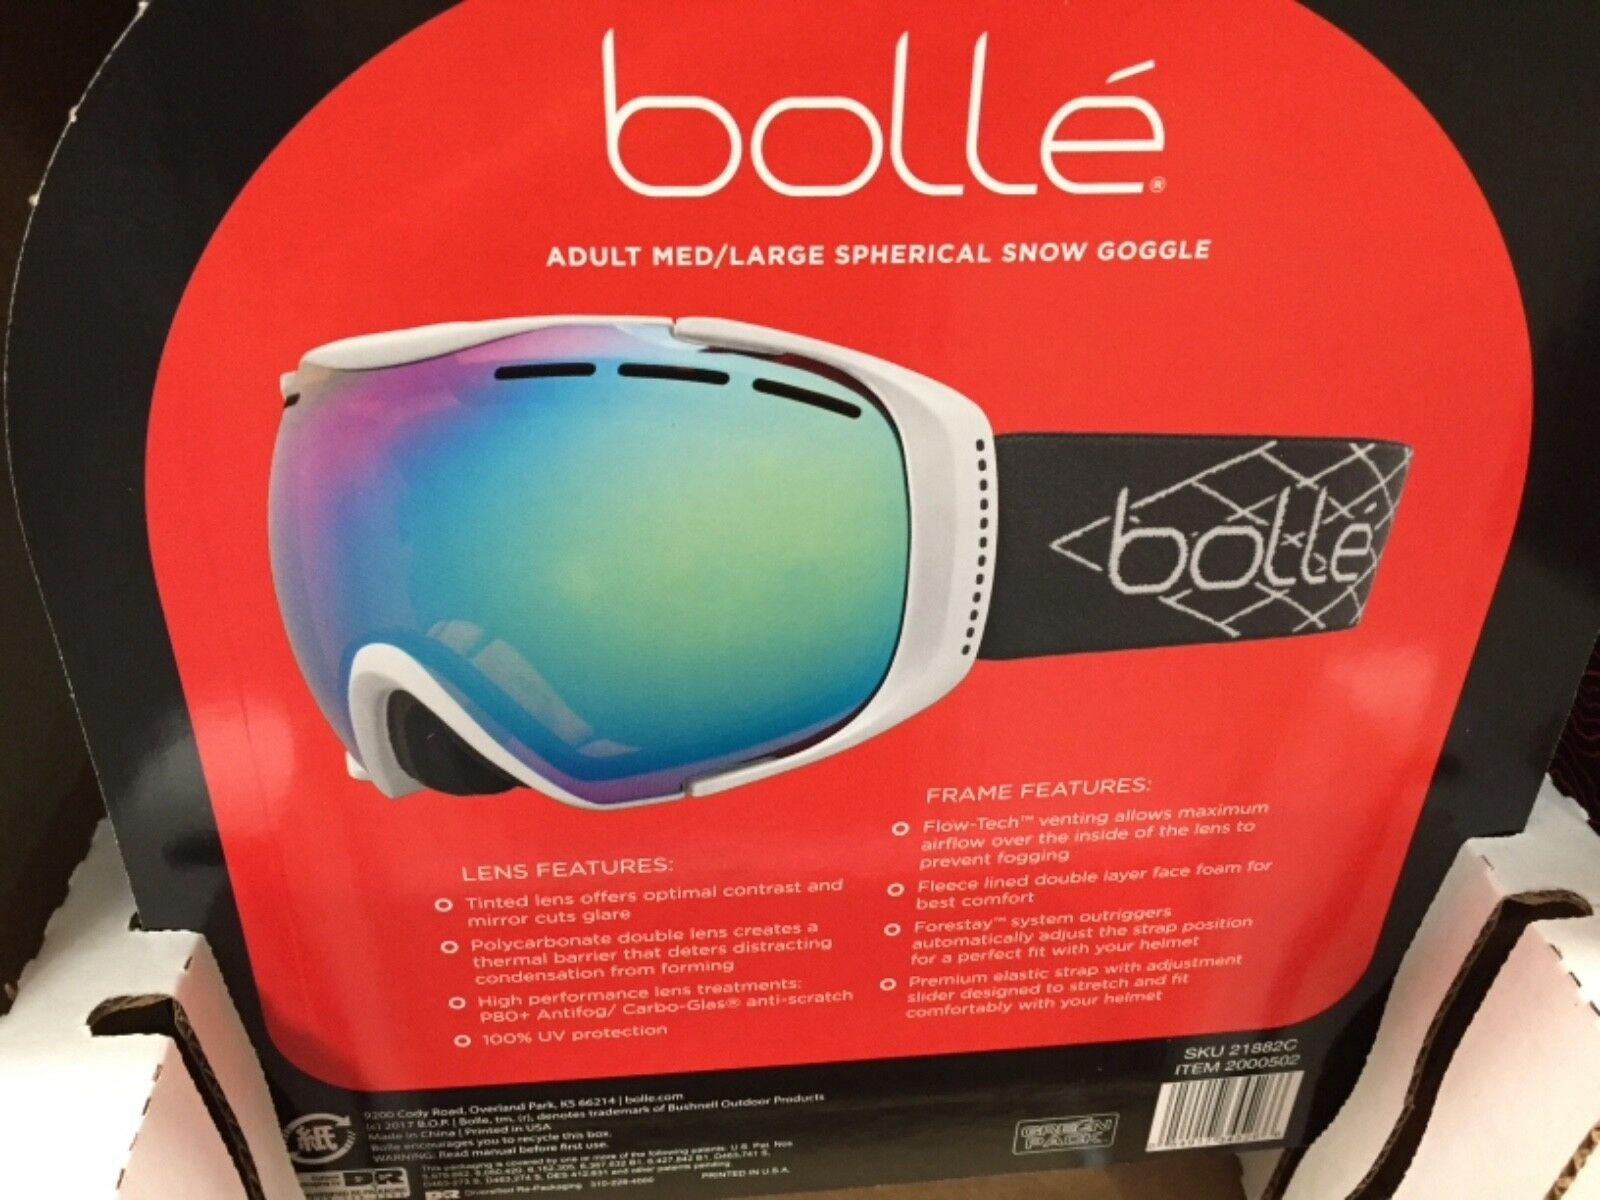 Bolle Adult Med Large Winter Sports Spherical Snow Goggle